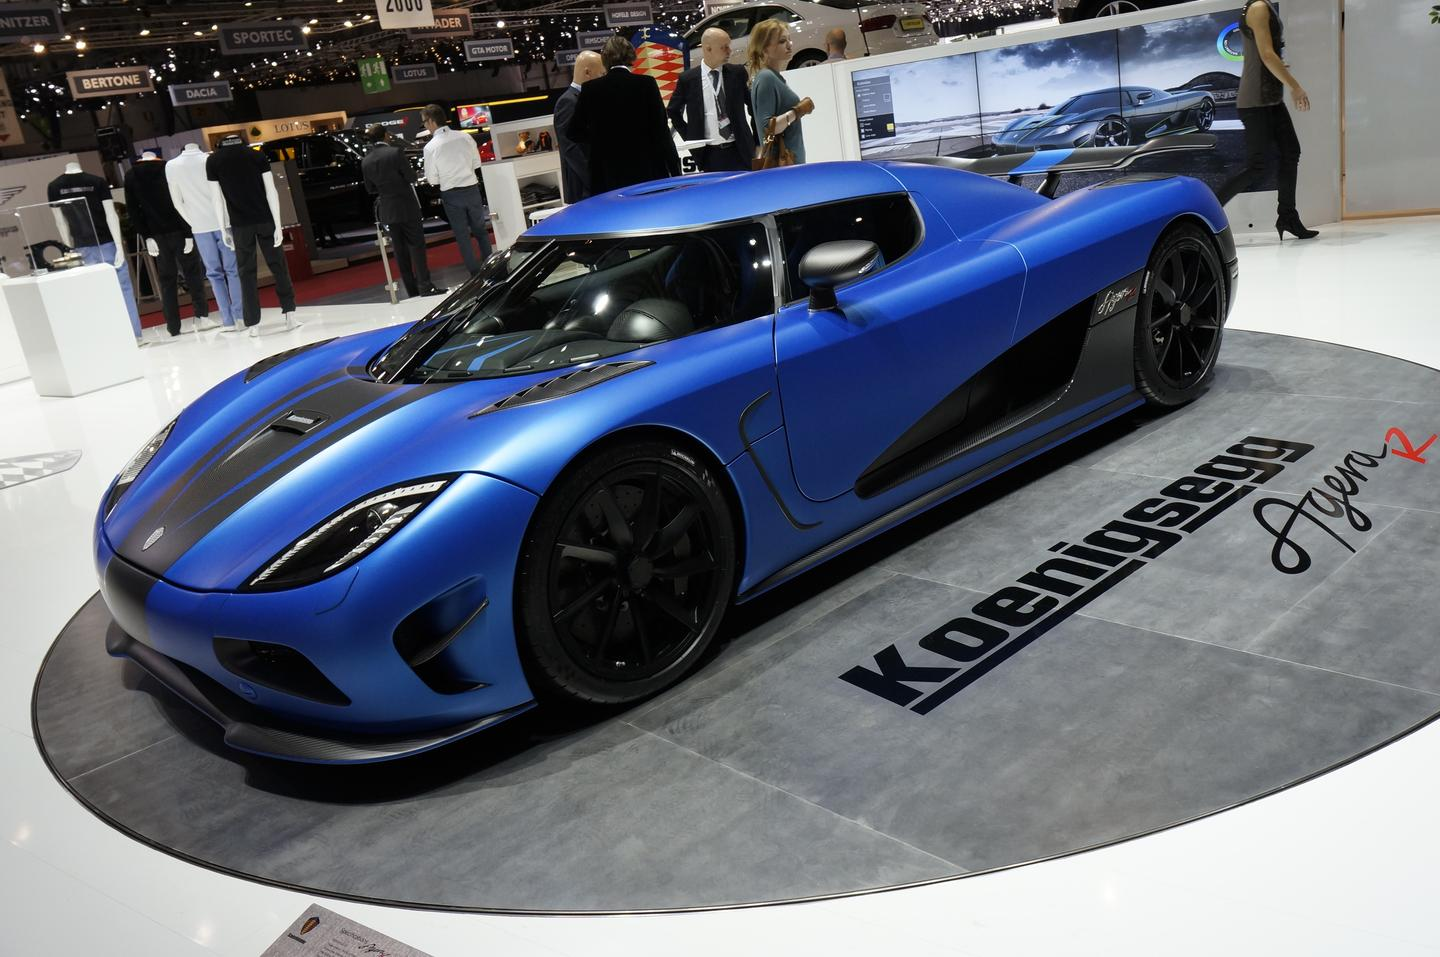 The Agera R on display at Geneva Auto Show 2012